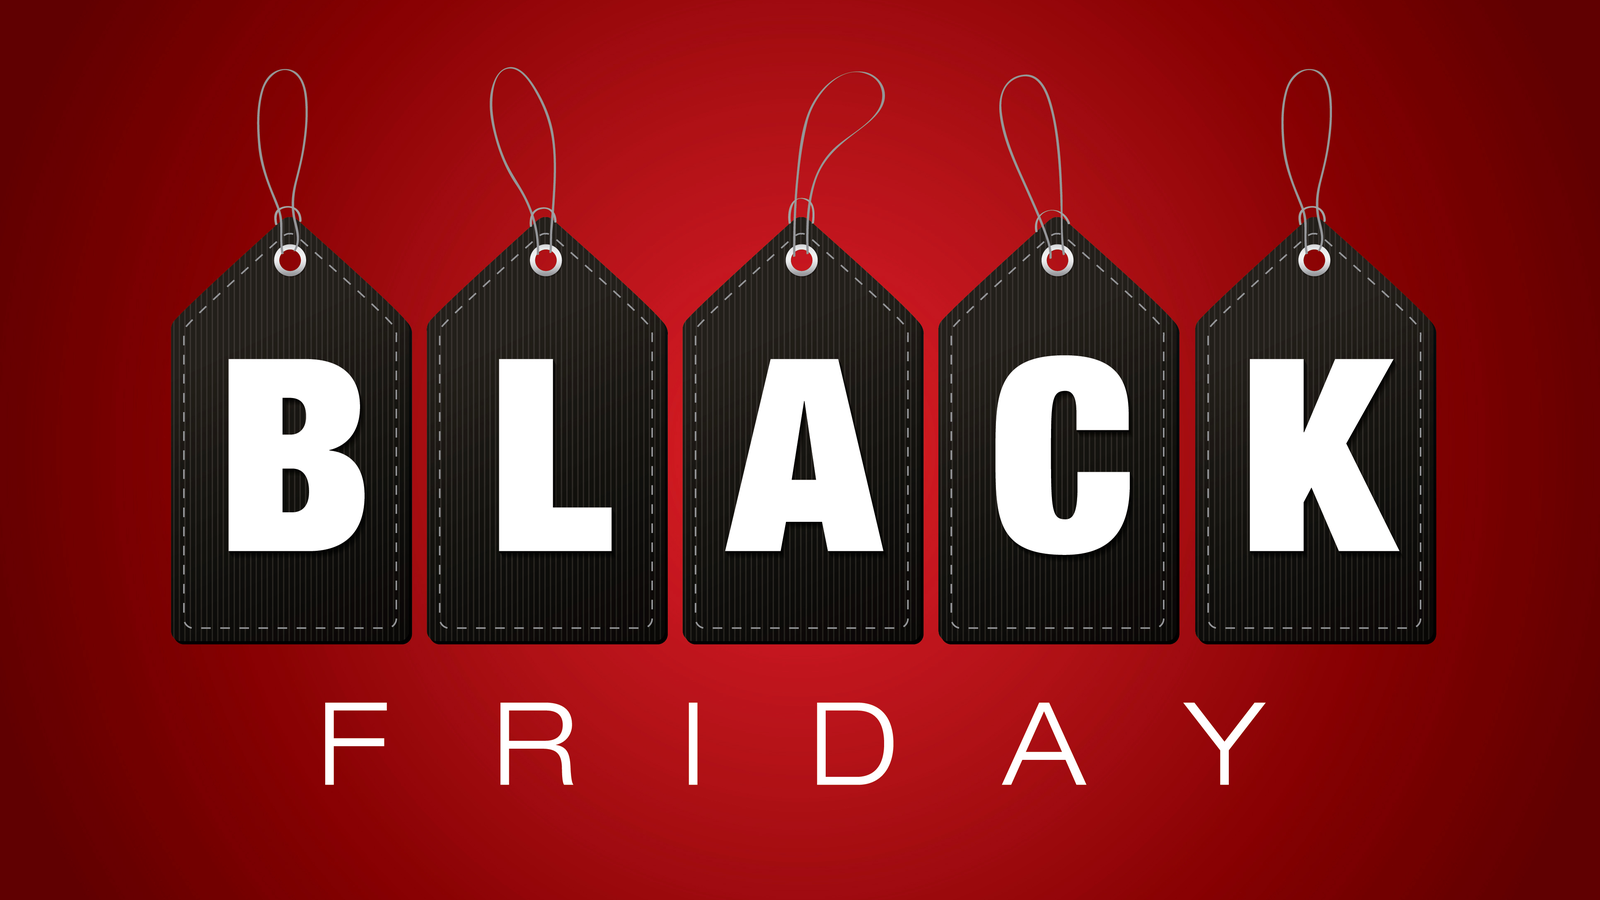 Will Black Friday 2020 Be The Same As Previous Years Digital Experience Monitoring Catchpoint